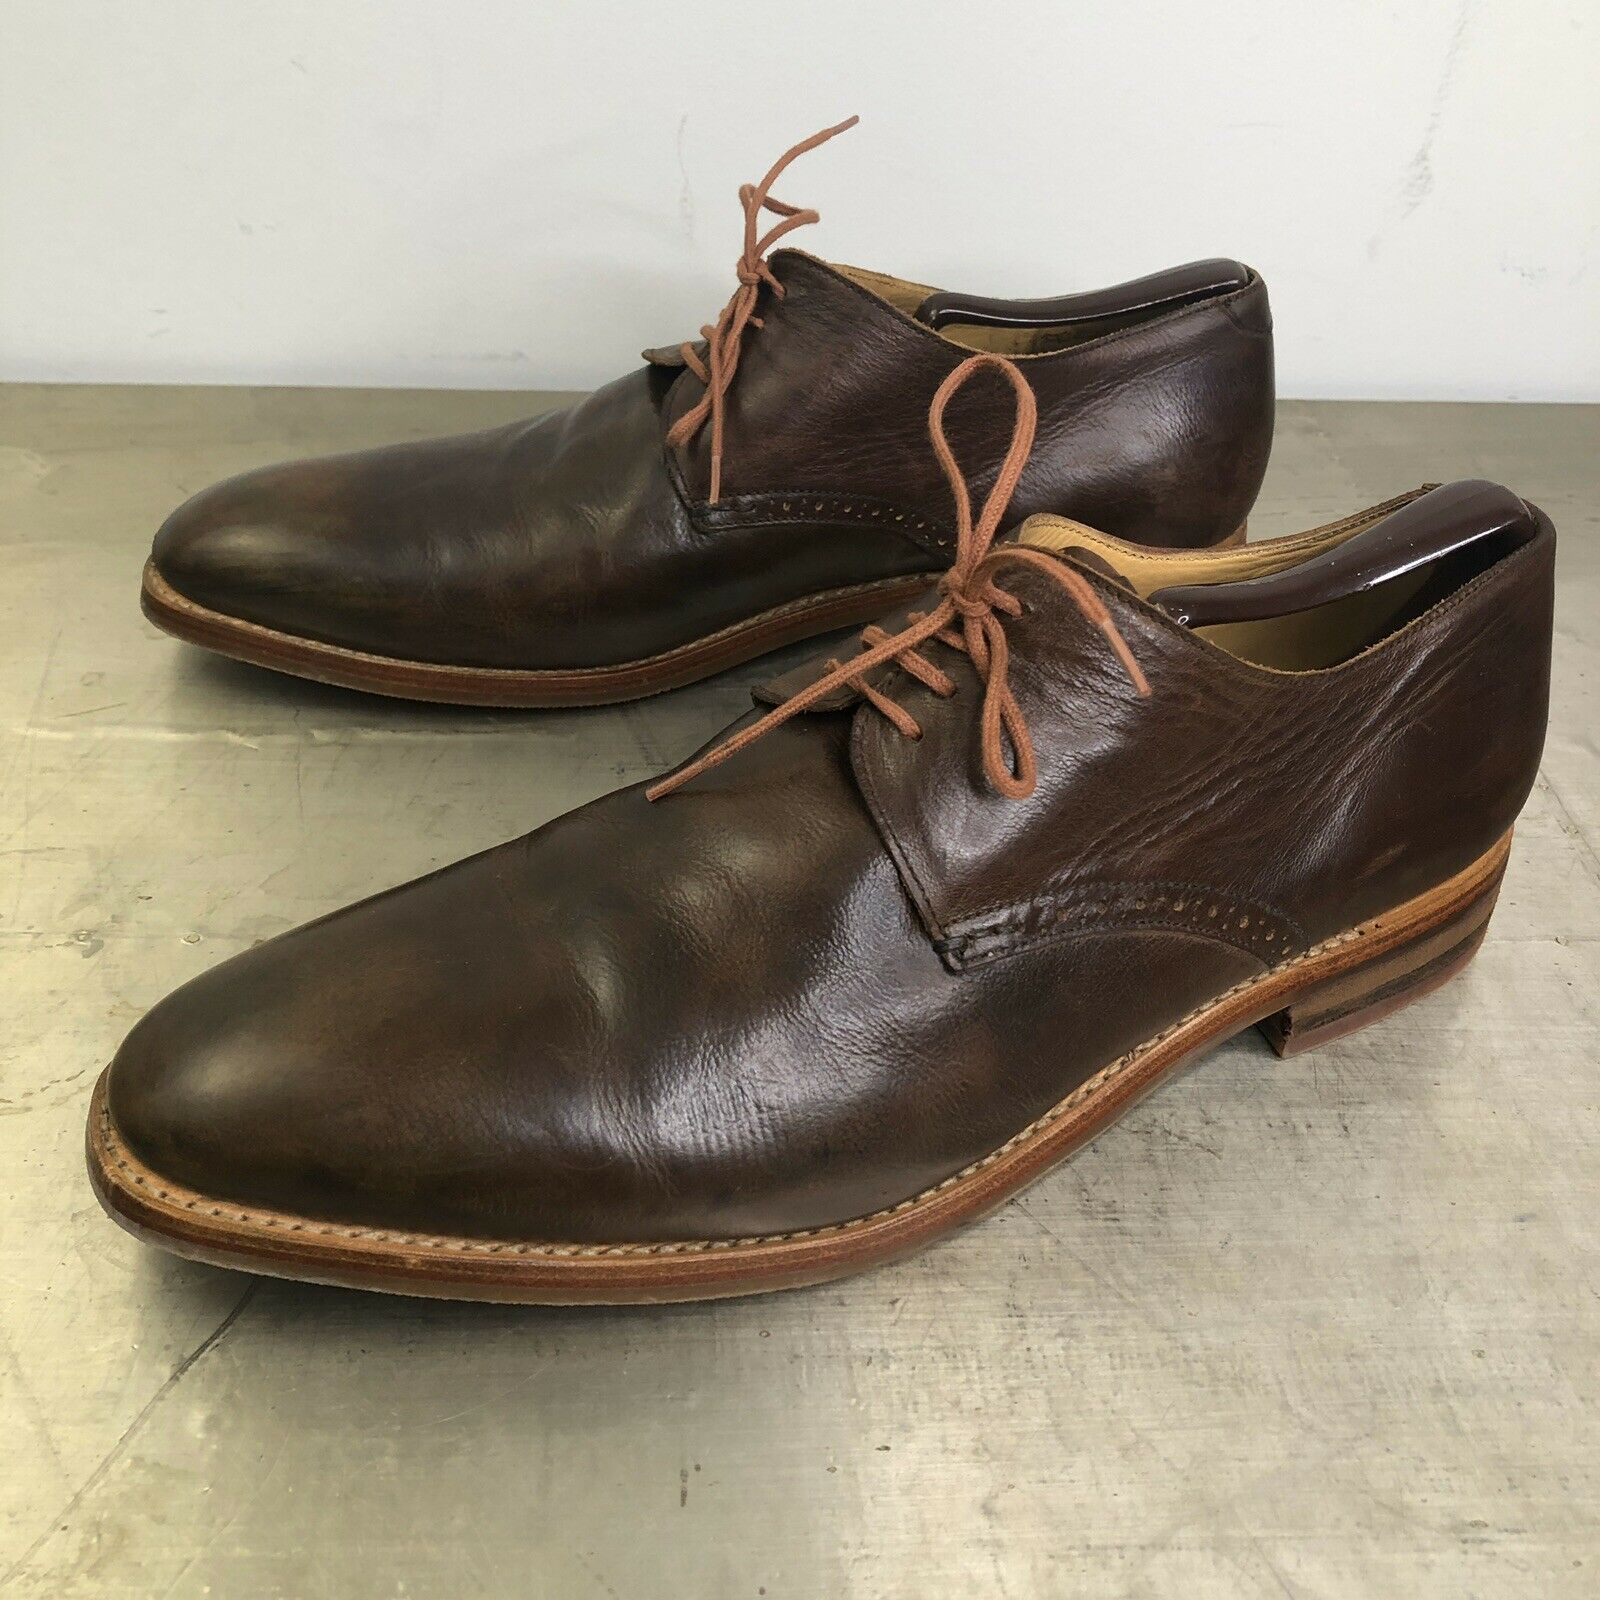 Heschung braun Leather Lace Up Derby Men's Größe 9.5 UK 10 US Made in France